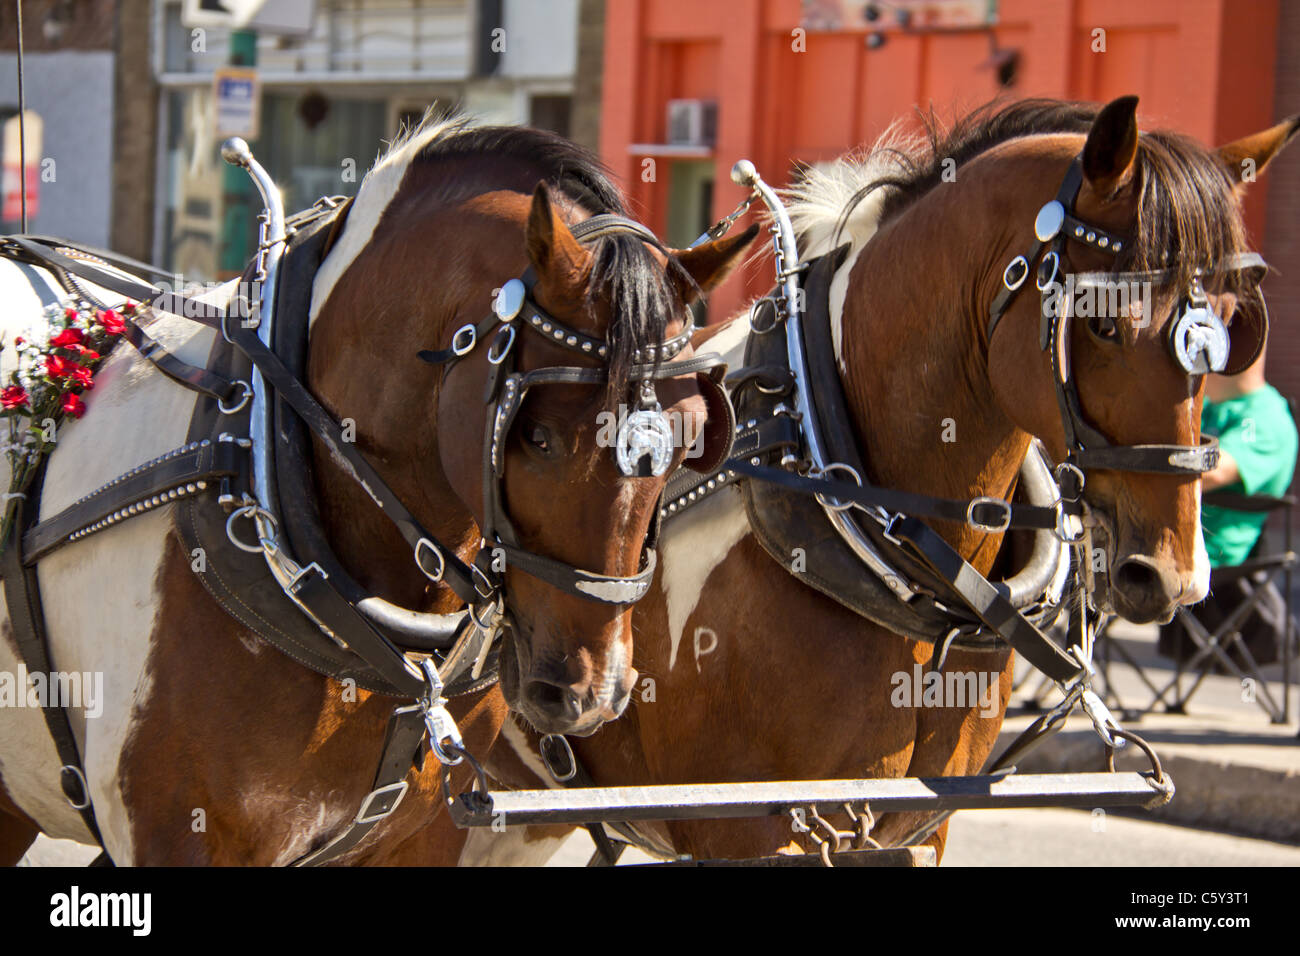 Two horses pulling a carriage at the 2011 Queen City Ex Parade in Regina, Saskatchewan - Stock Image